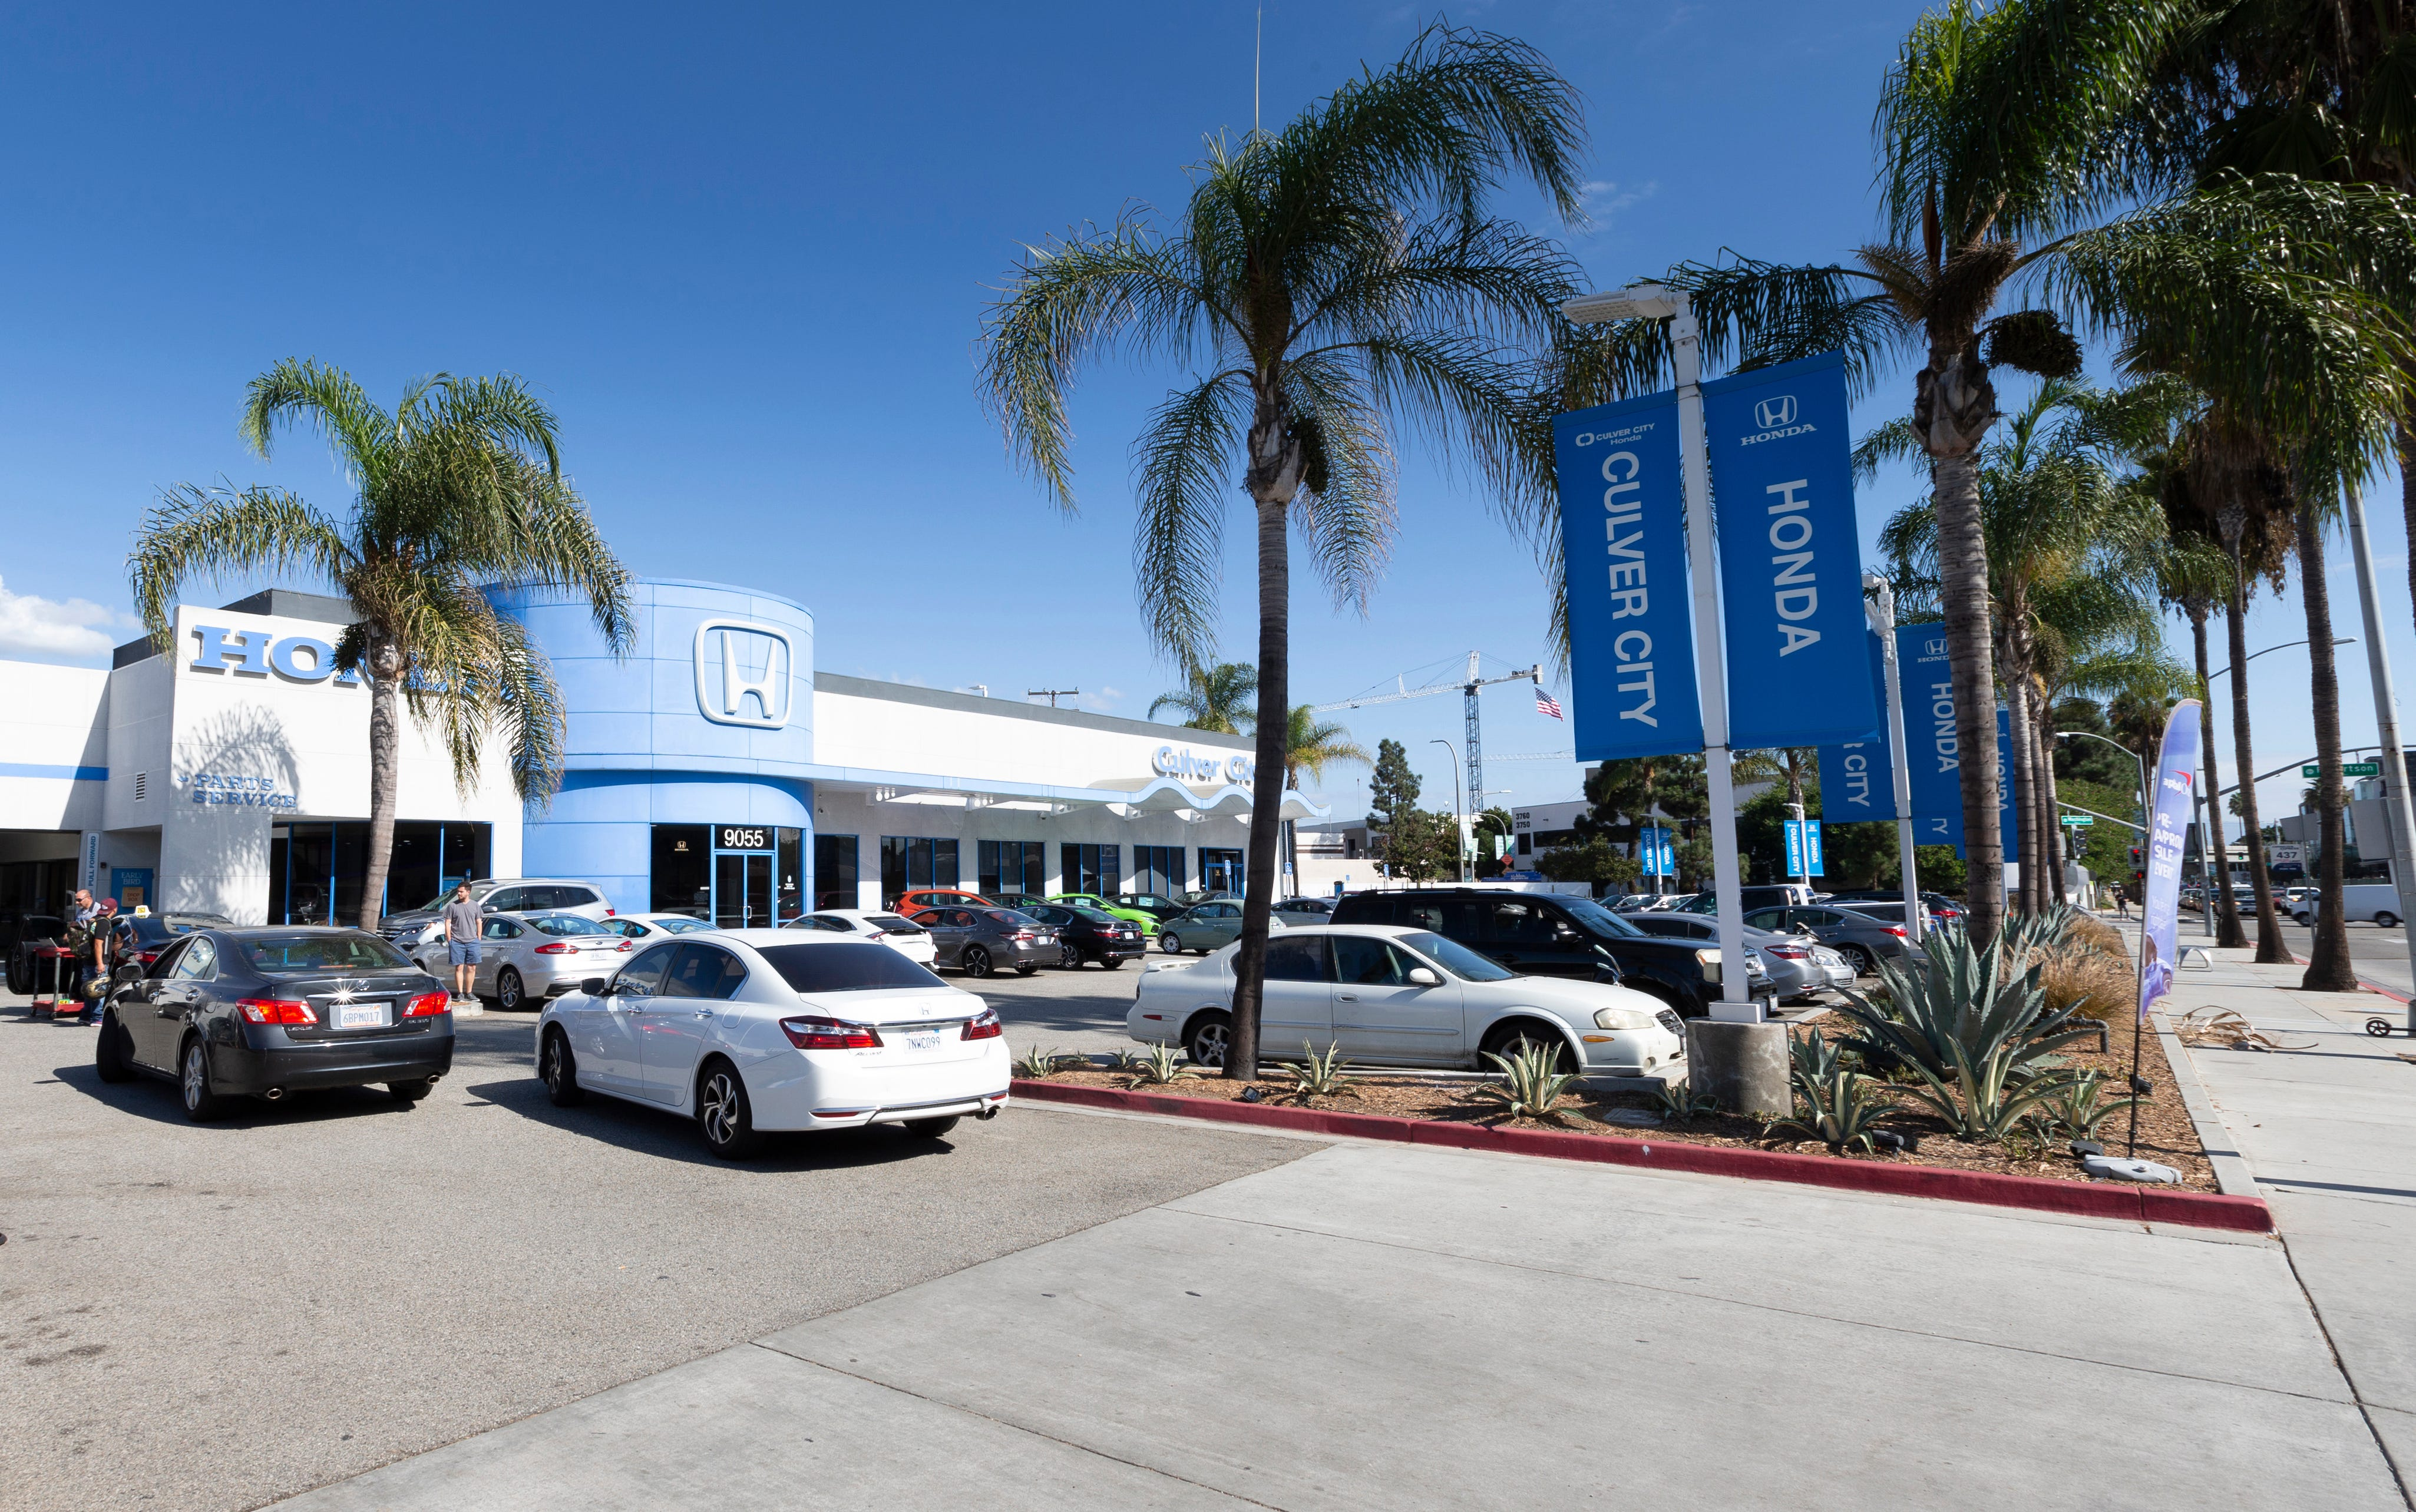 This undated photo provided by Edmunds shows Culver City Honda dealership in Culver City, Calif. First-time buyers are likely to visit dealerships as they shop, but dealership service departments also can be sources of information on vehicle maintenance and repair costs. These are crucial elements in creating a realistic car-buying budget. (Scott Jacobs/Edmunds via AP)